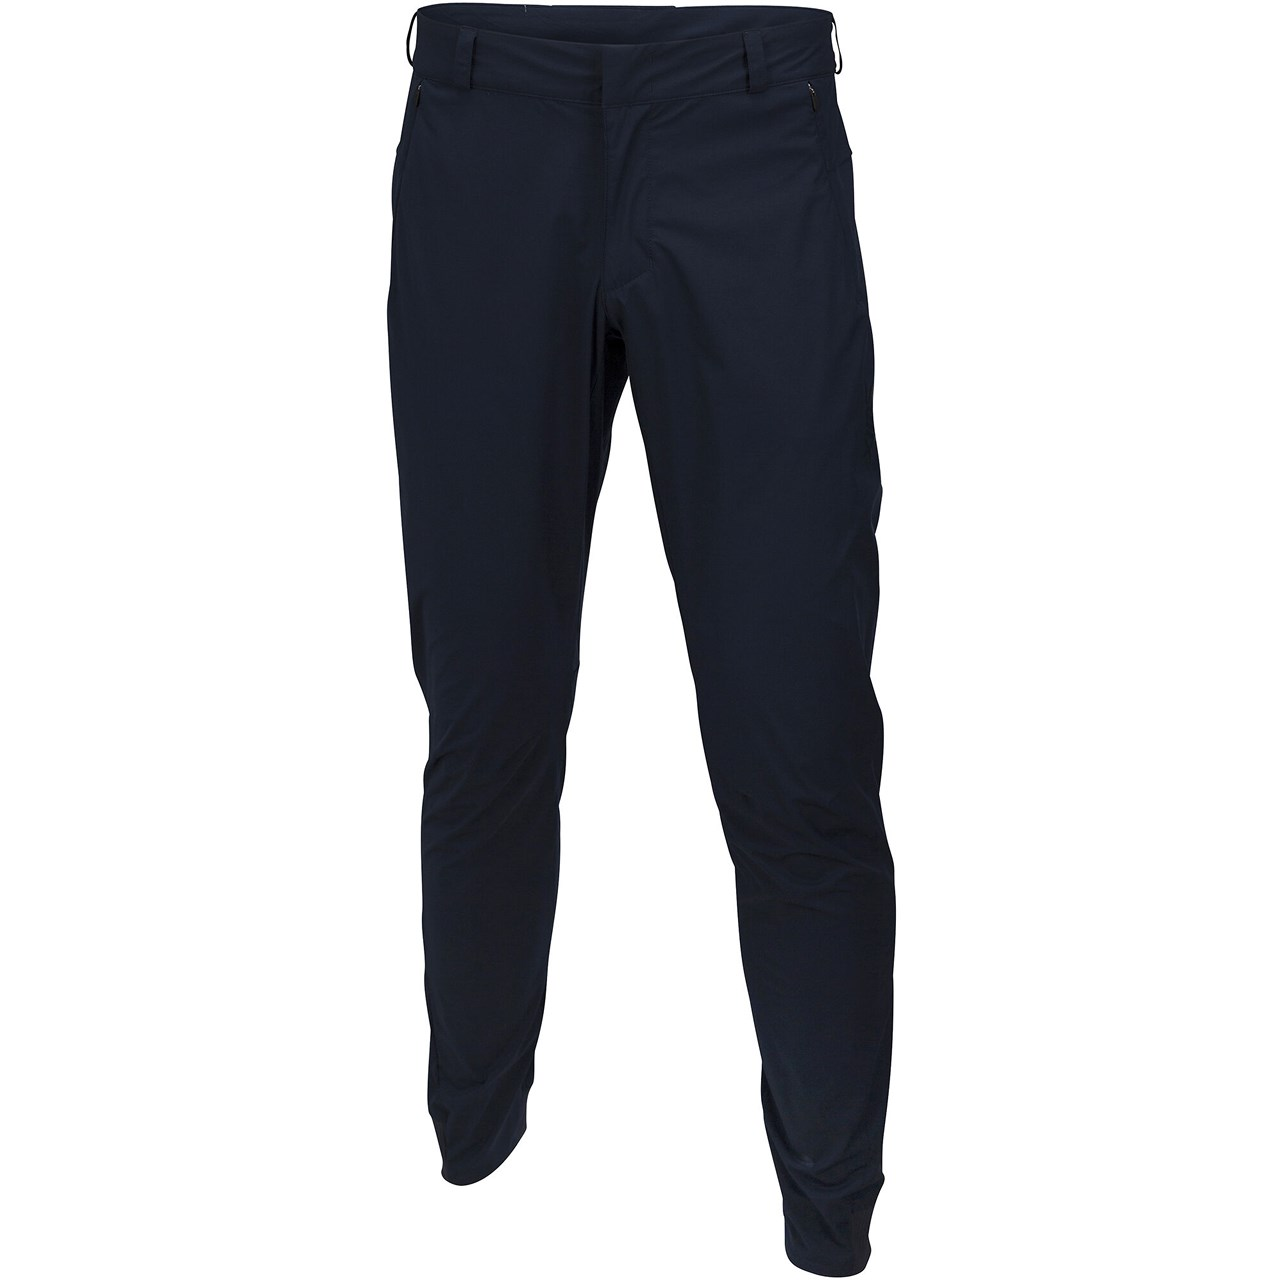 Swix Motion adventure pant M navy